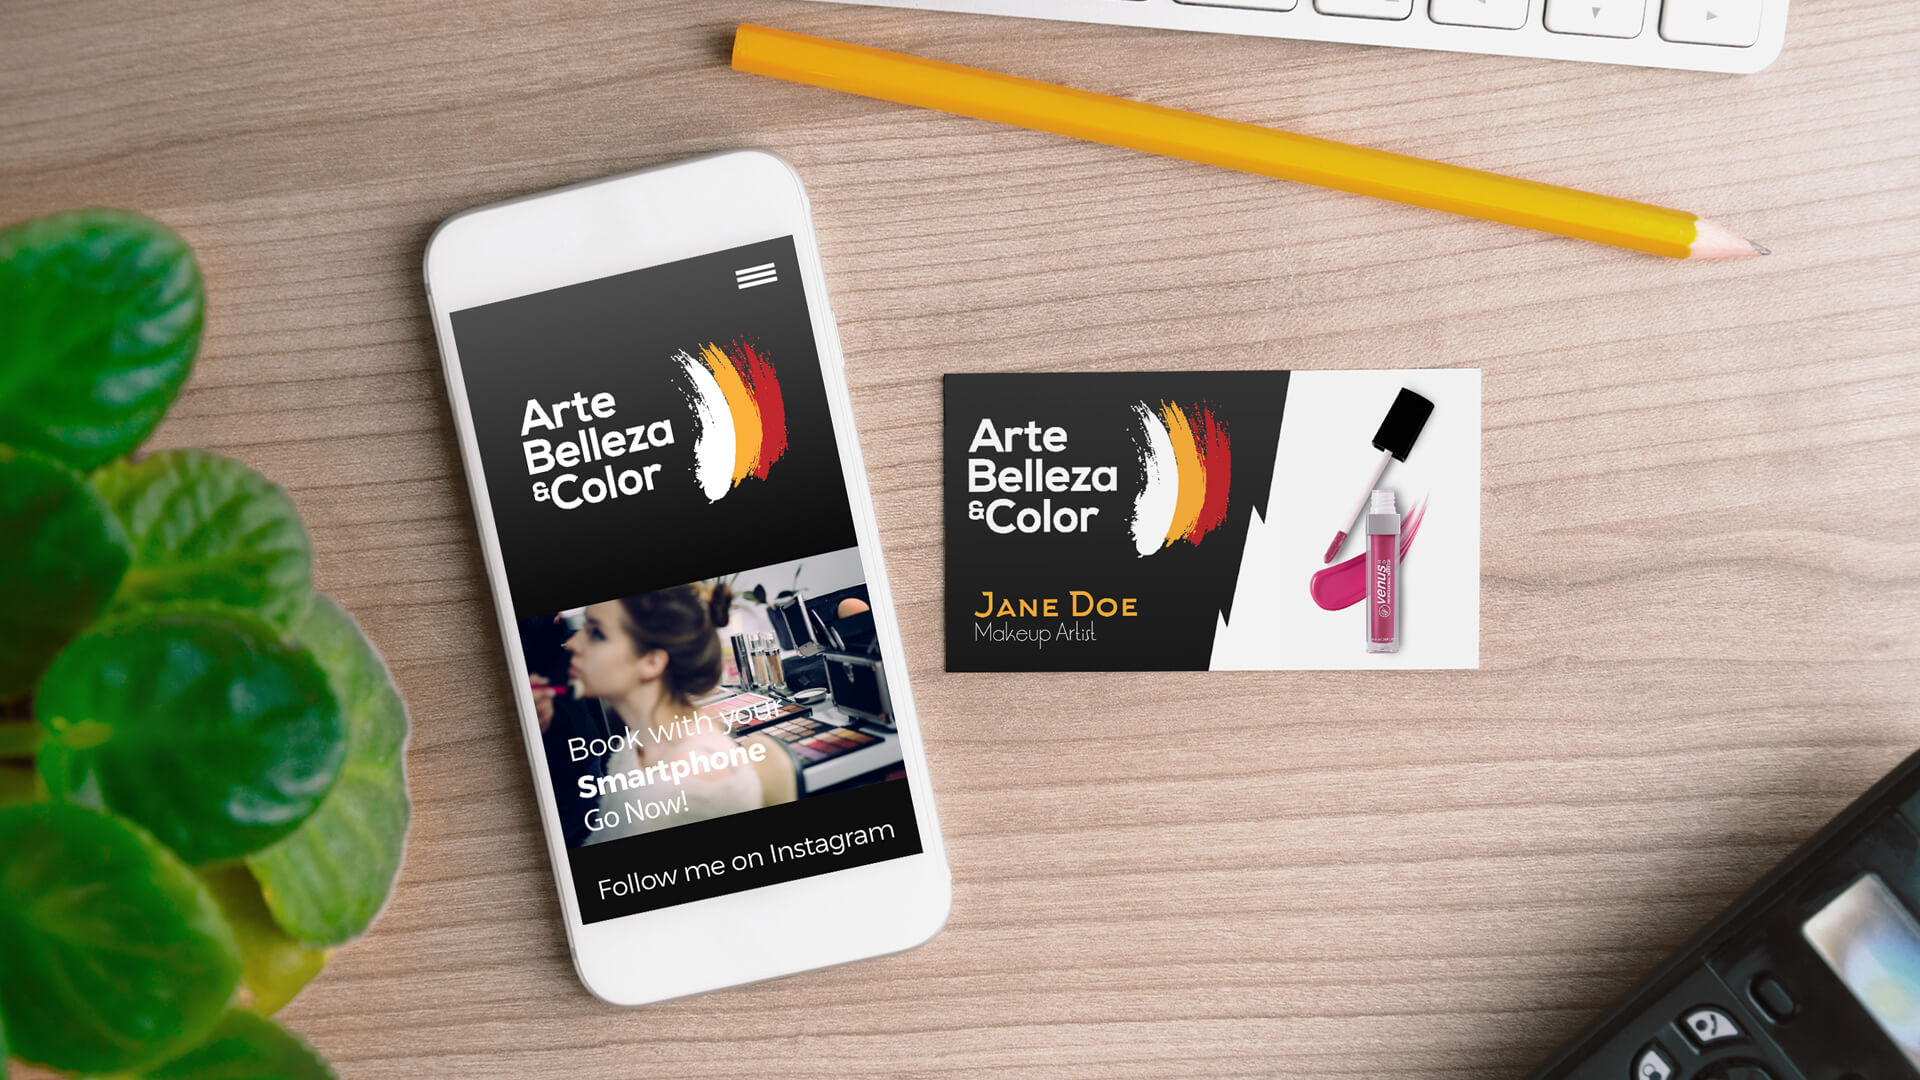 Arte Belleza and Color phone and business card